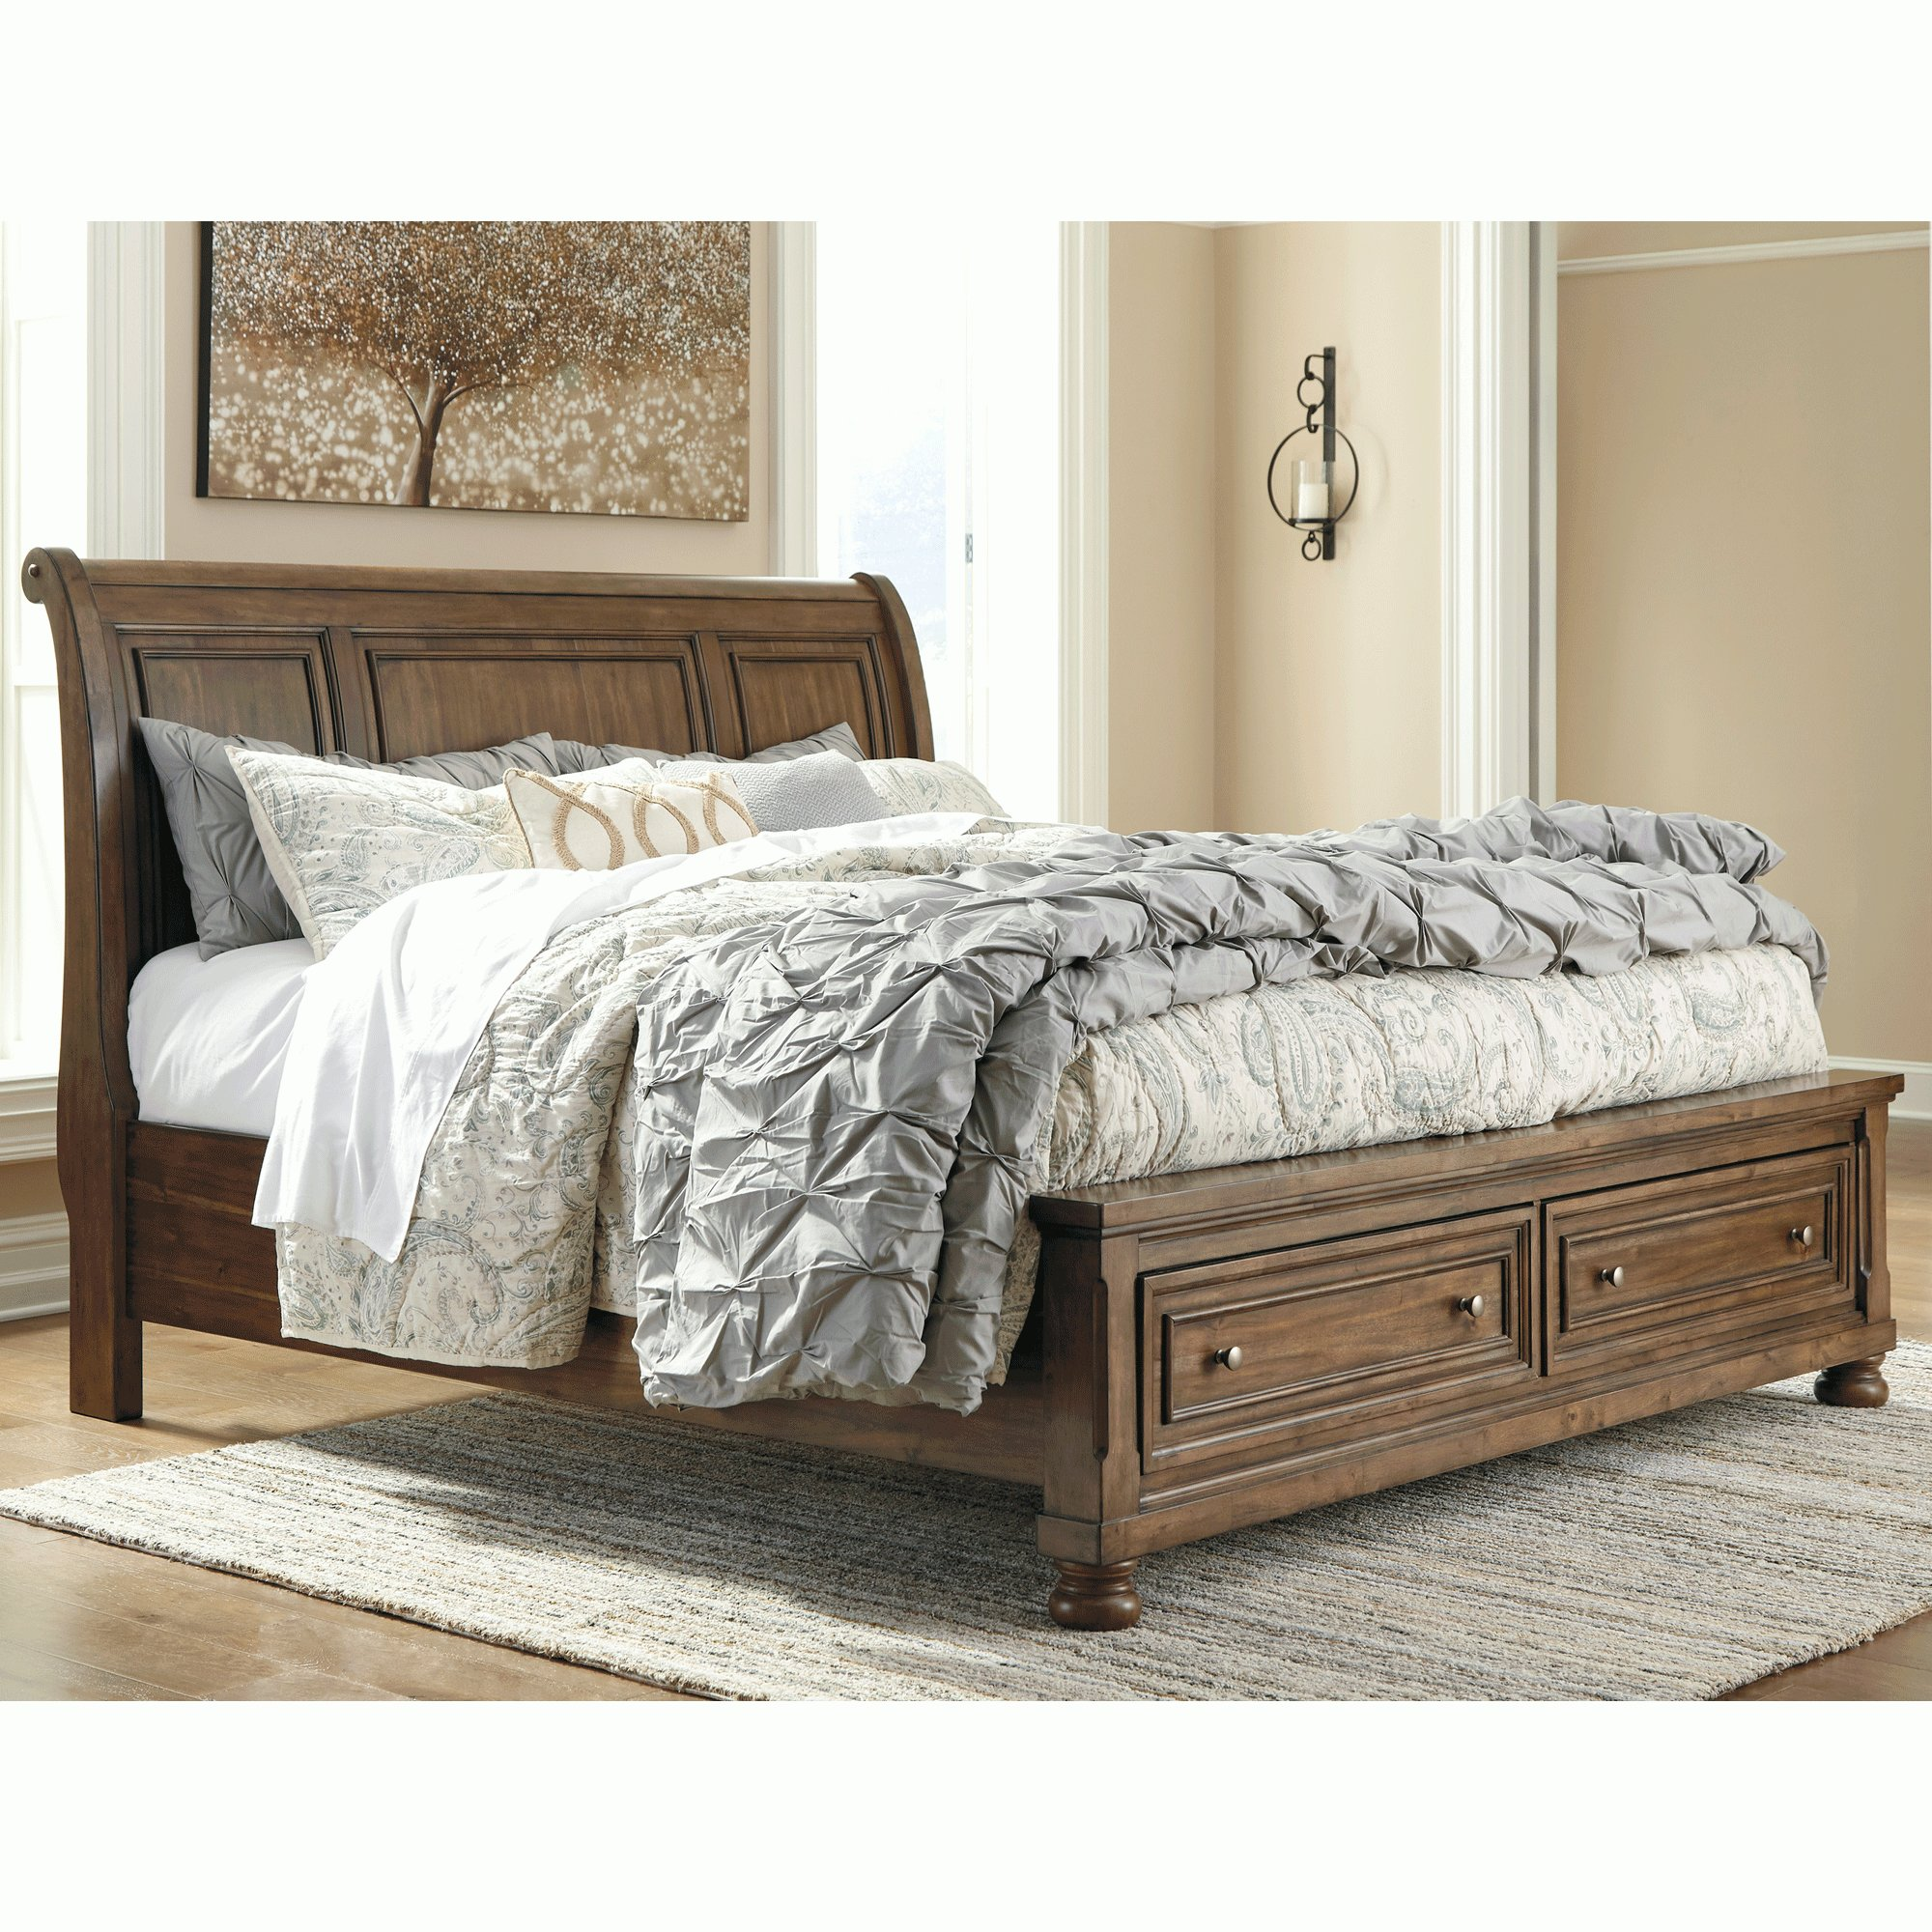 Best Flynnter Sleigh Storage Bed Wood Beds Bedroom Bernie With Pictures